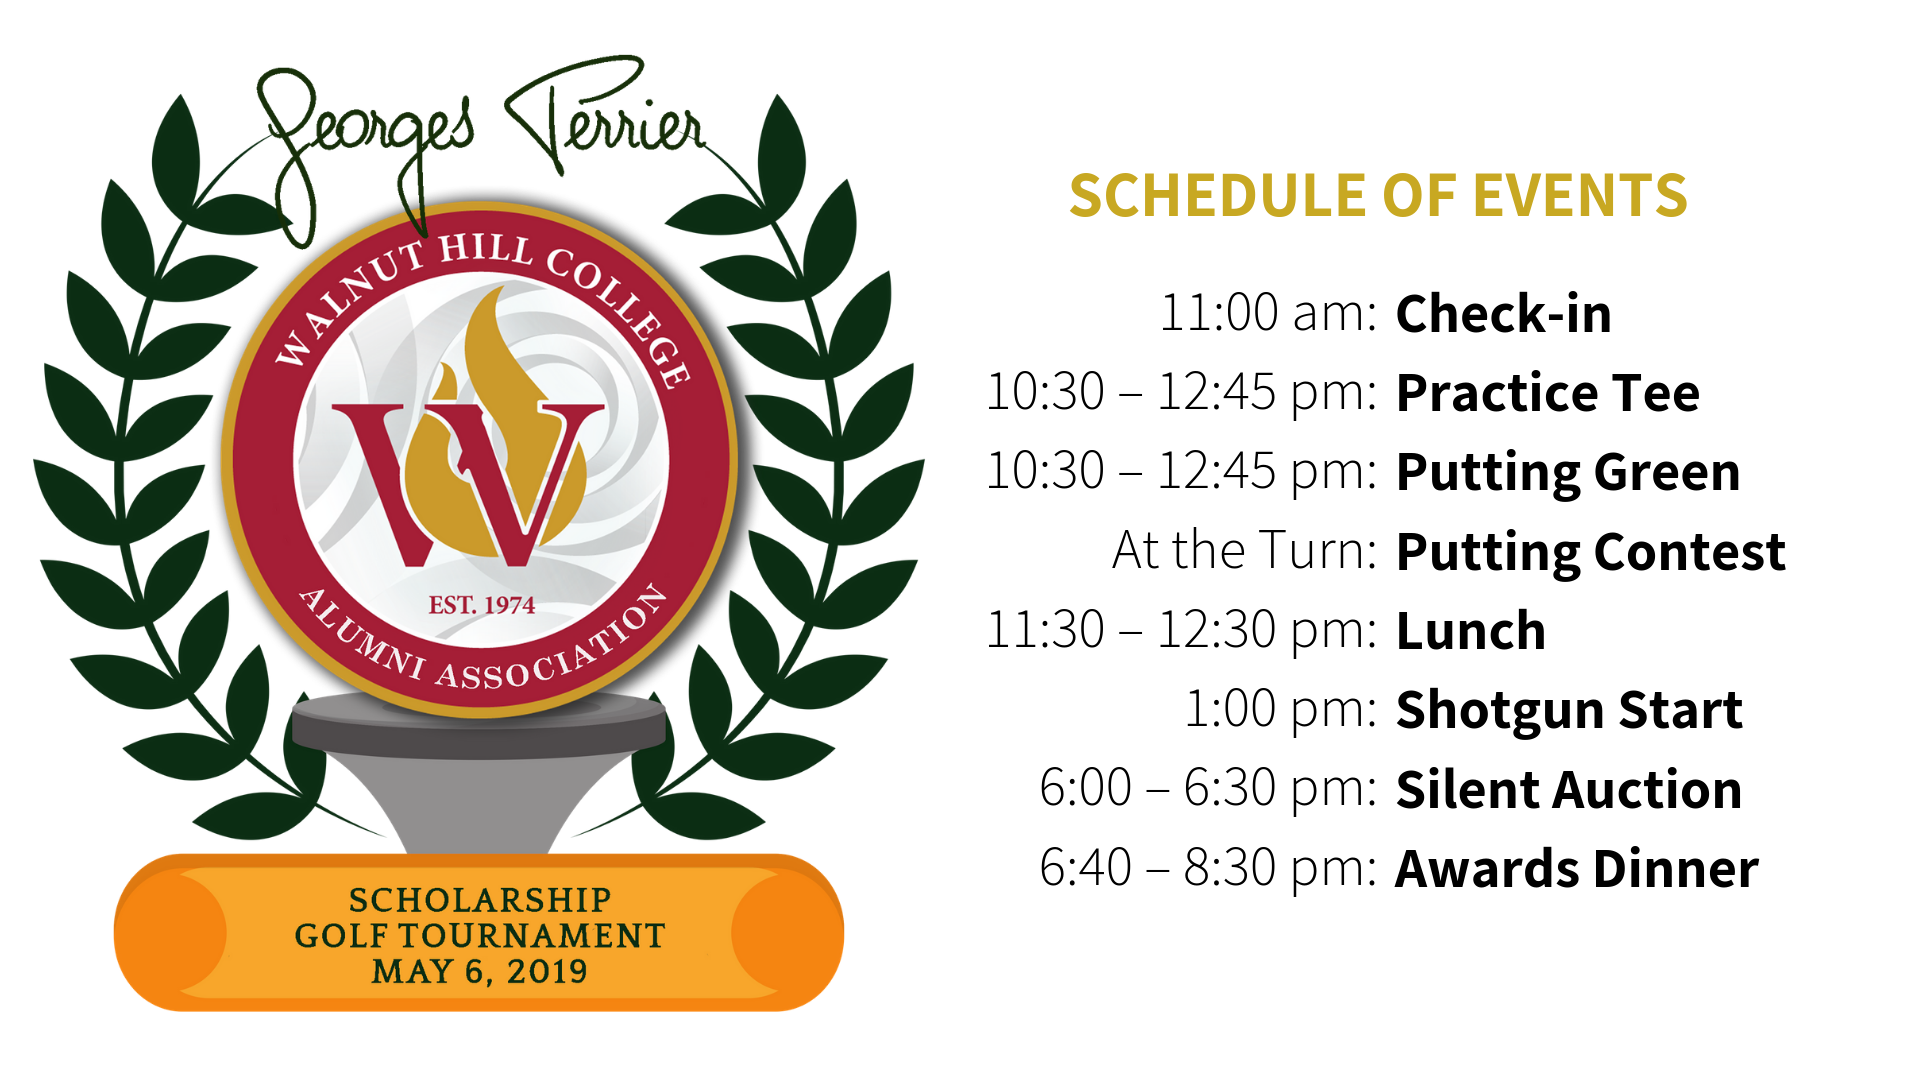 Georges Perrier Scholarship Tournament Itinerary